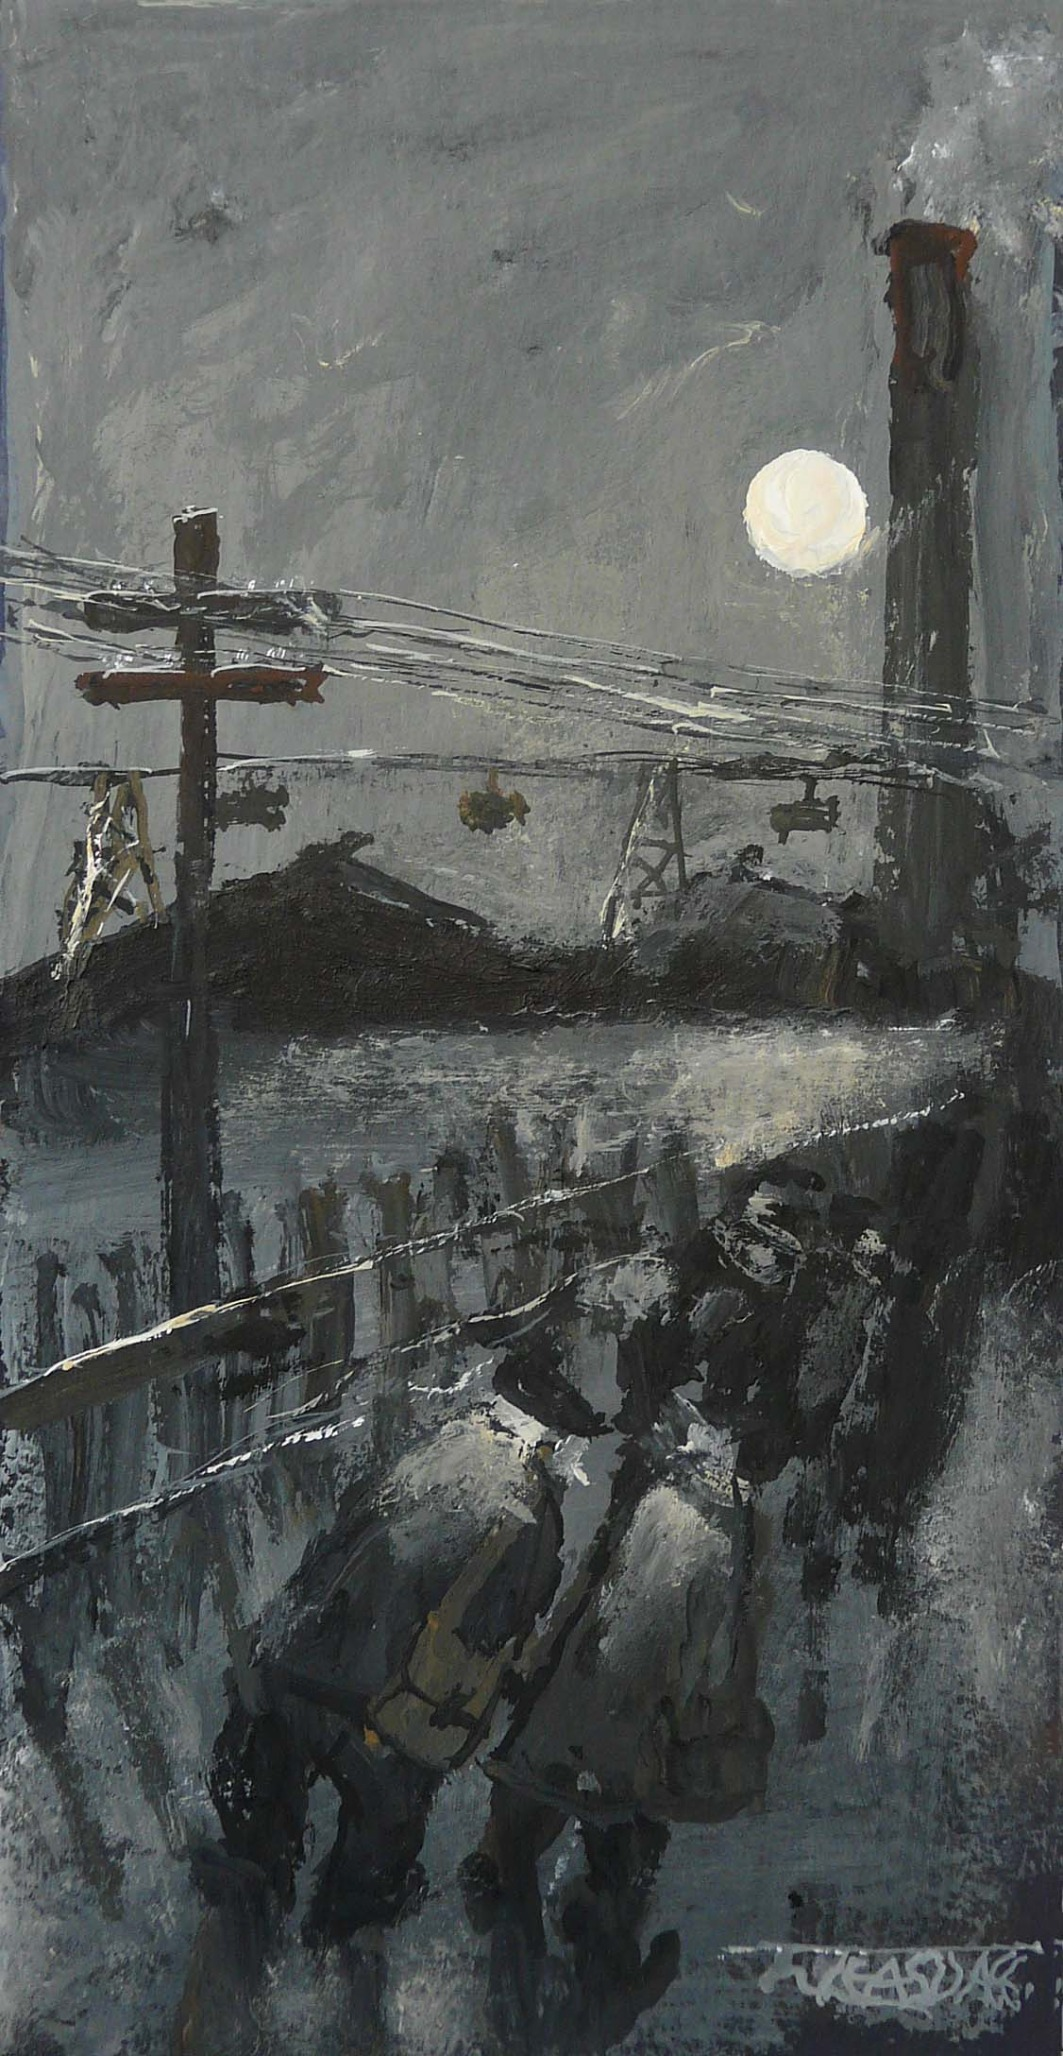 Follow the Moon by Malcolm Teasdale, Northern | Nostalgic | Industrial